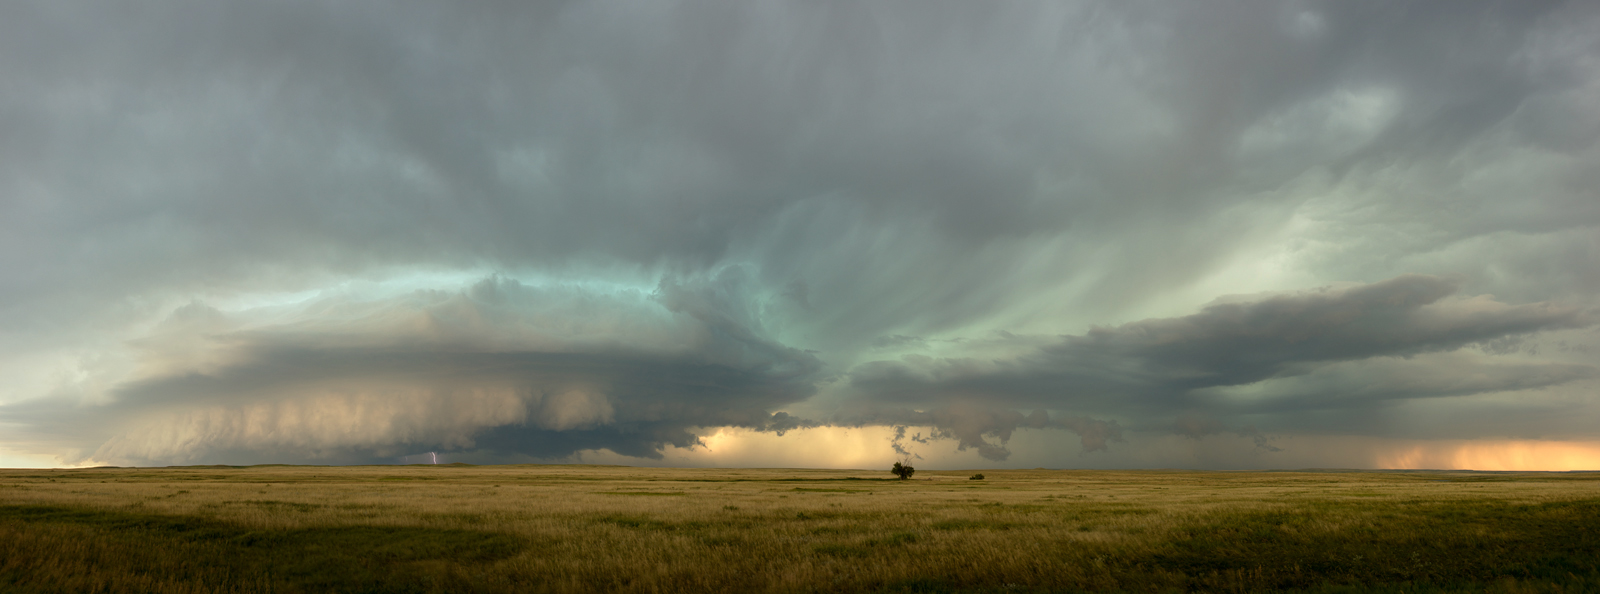 Panoramic, landscape, sunset, storm, clouds, lightning, plains, South Dakota, grassland, panoramique, photographie, orage, plaines, photo